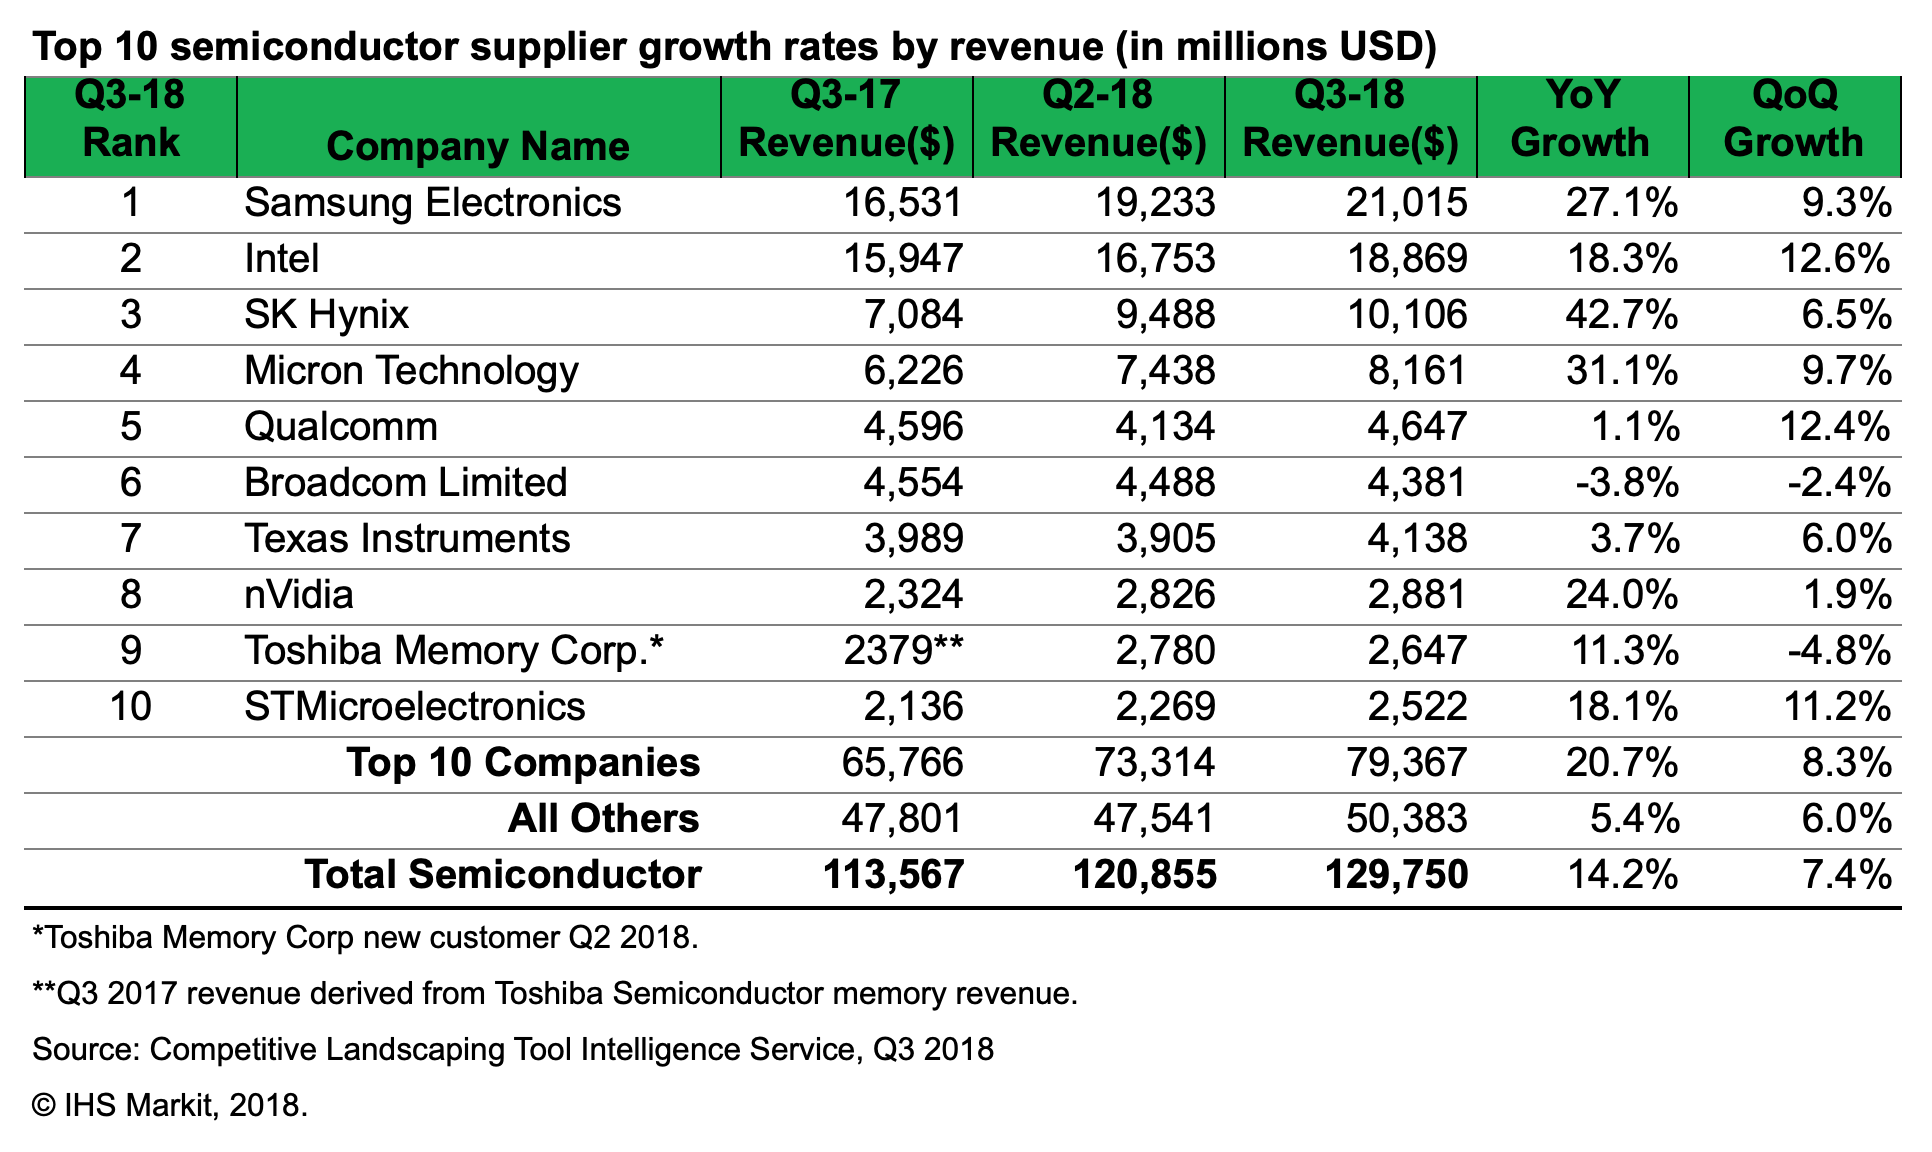 Top 10 Semiconductor companies